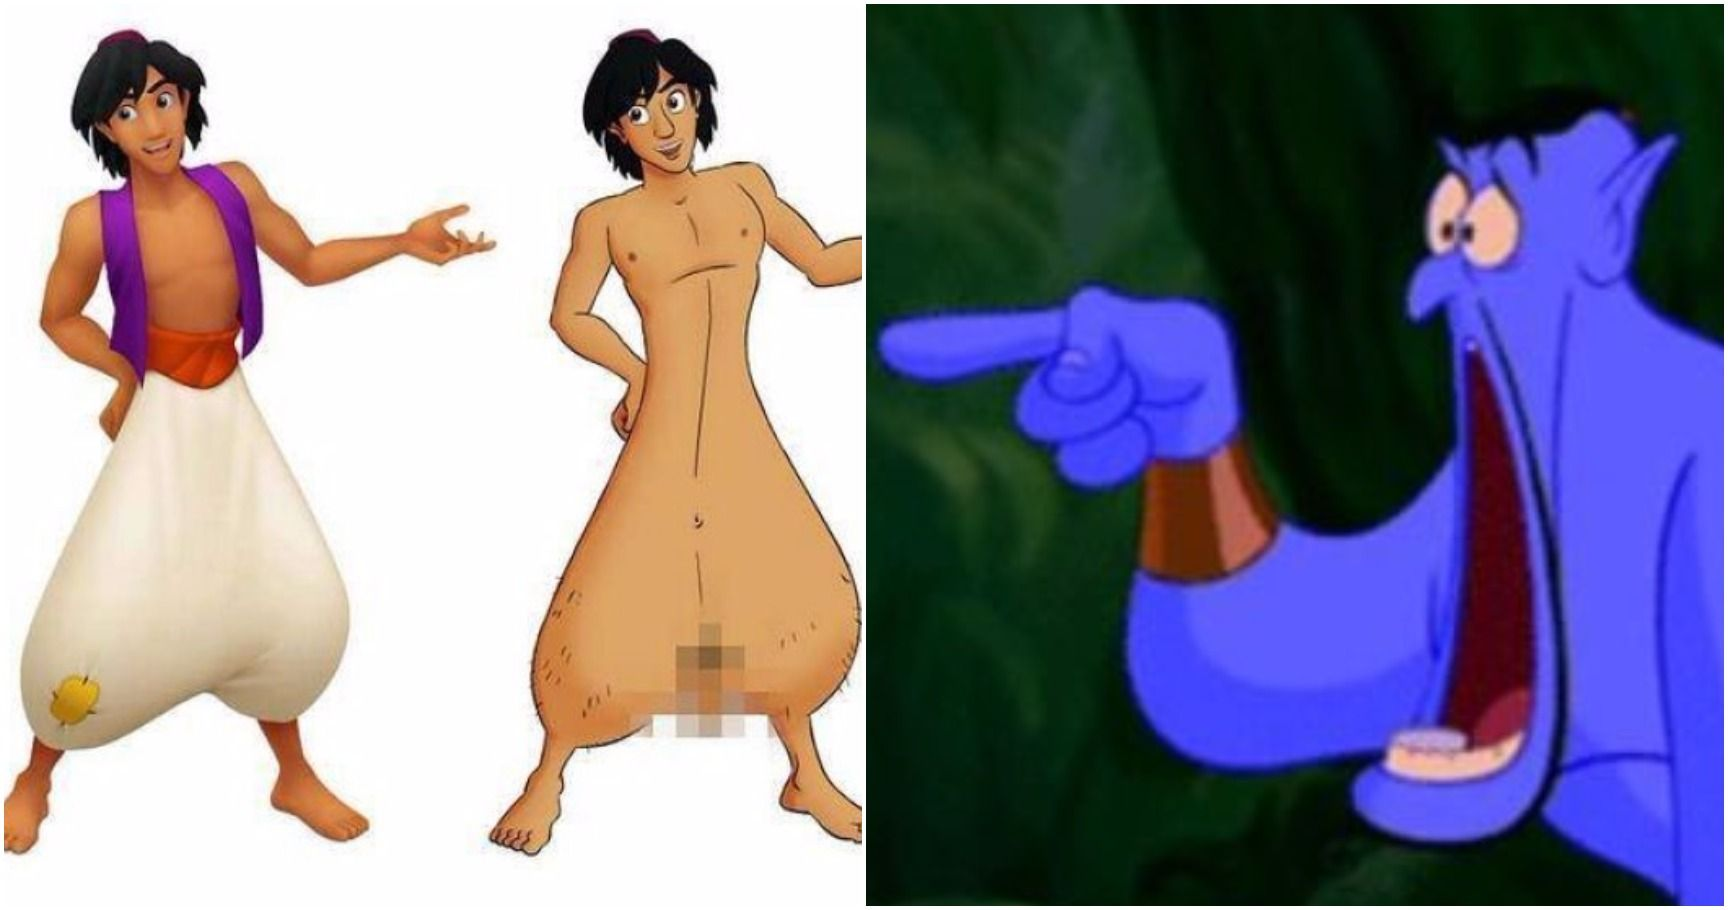 15 Inappropriate Disney Posts Your Eyes Will Desperately Want To Unsee